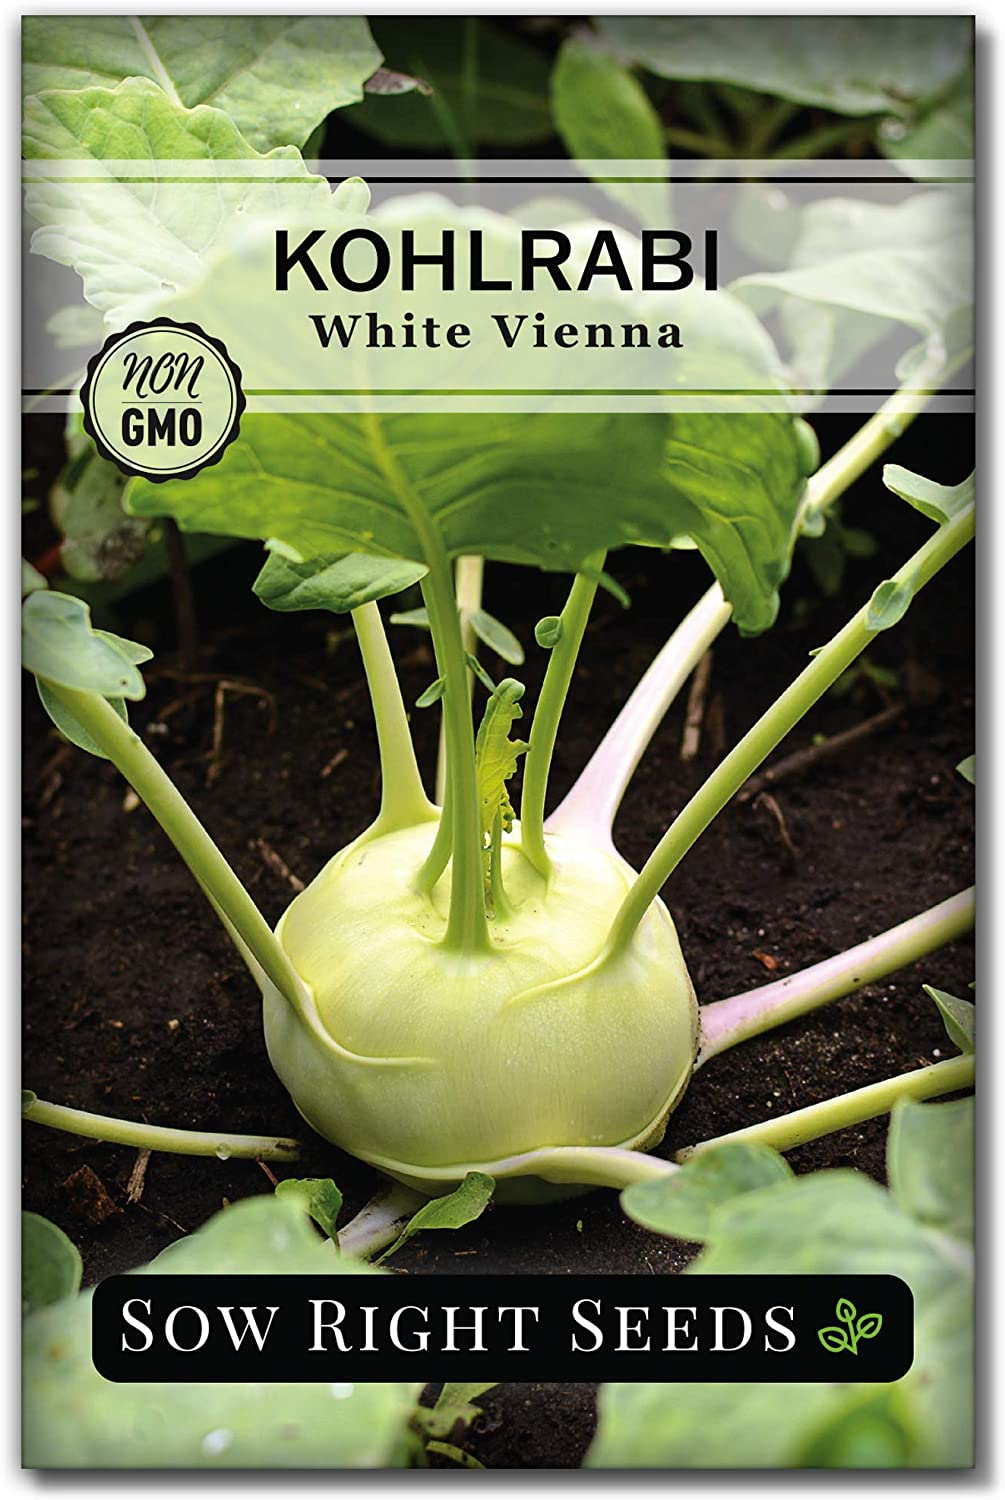 Sow Right Seeds - White Vienna Kohlrabi Seed for Planting - Non-GMO Heirloom Packet with Instructions to Plant a Home Vegetable Garden